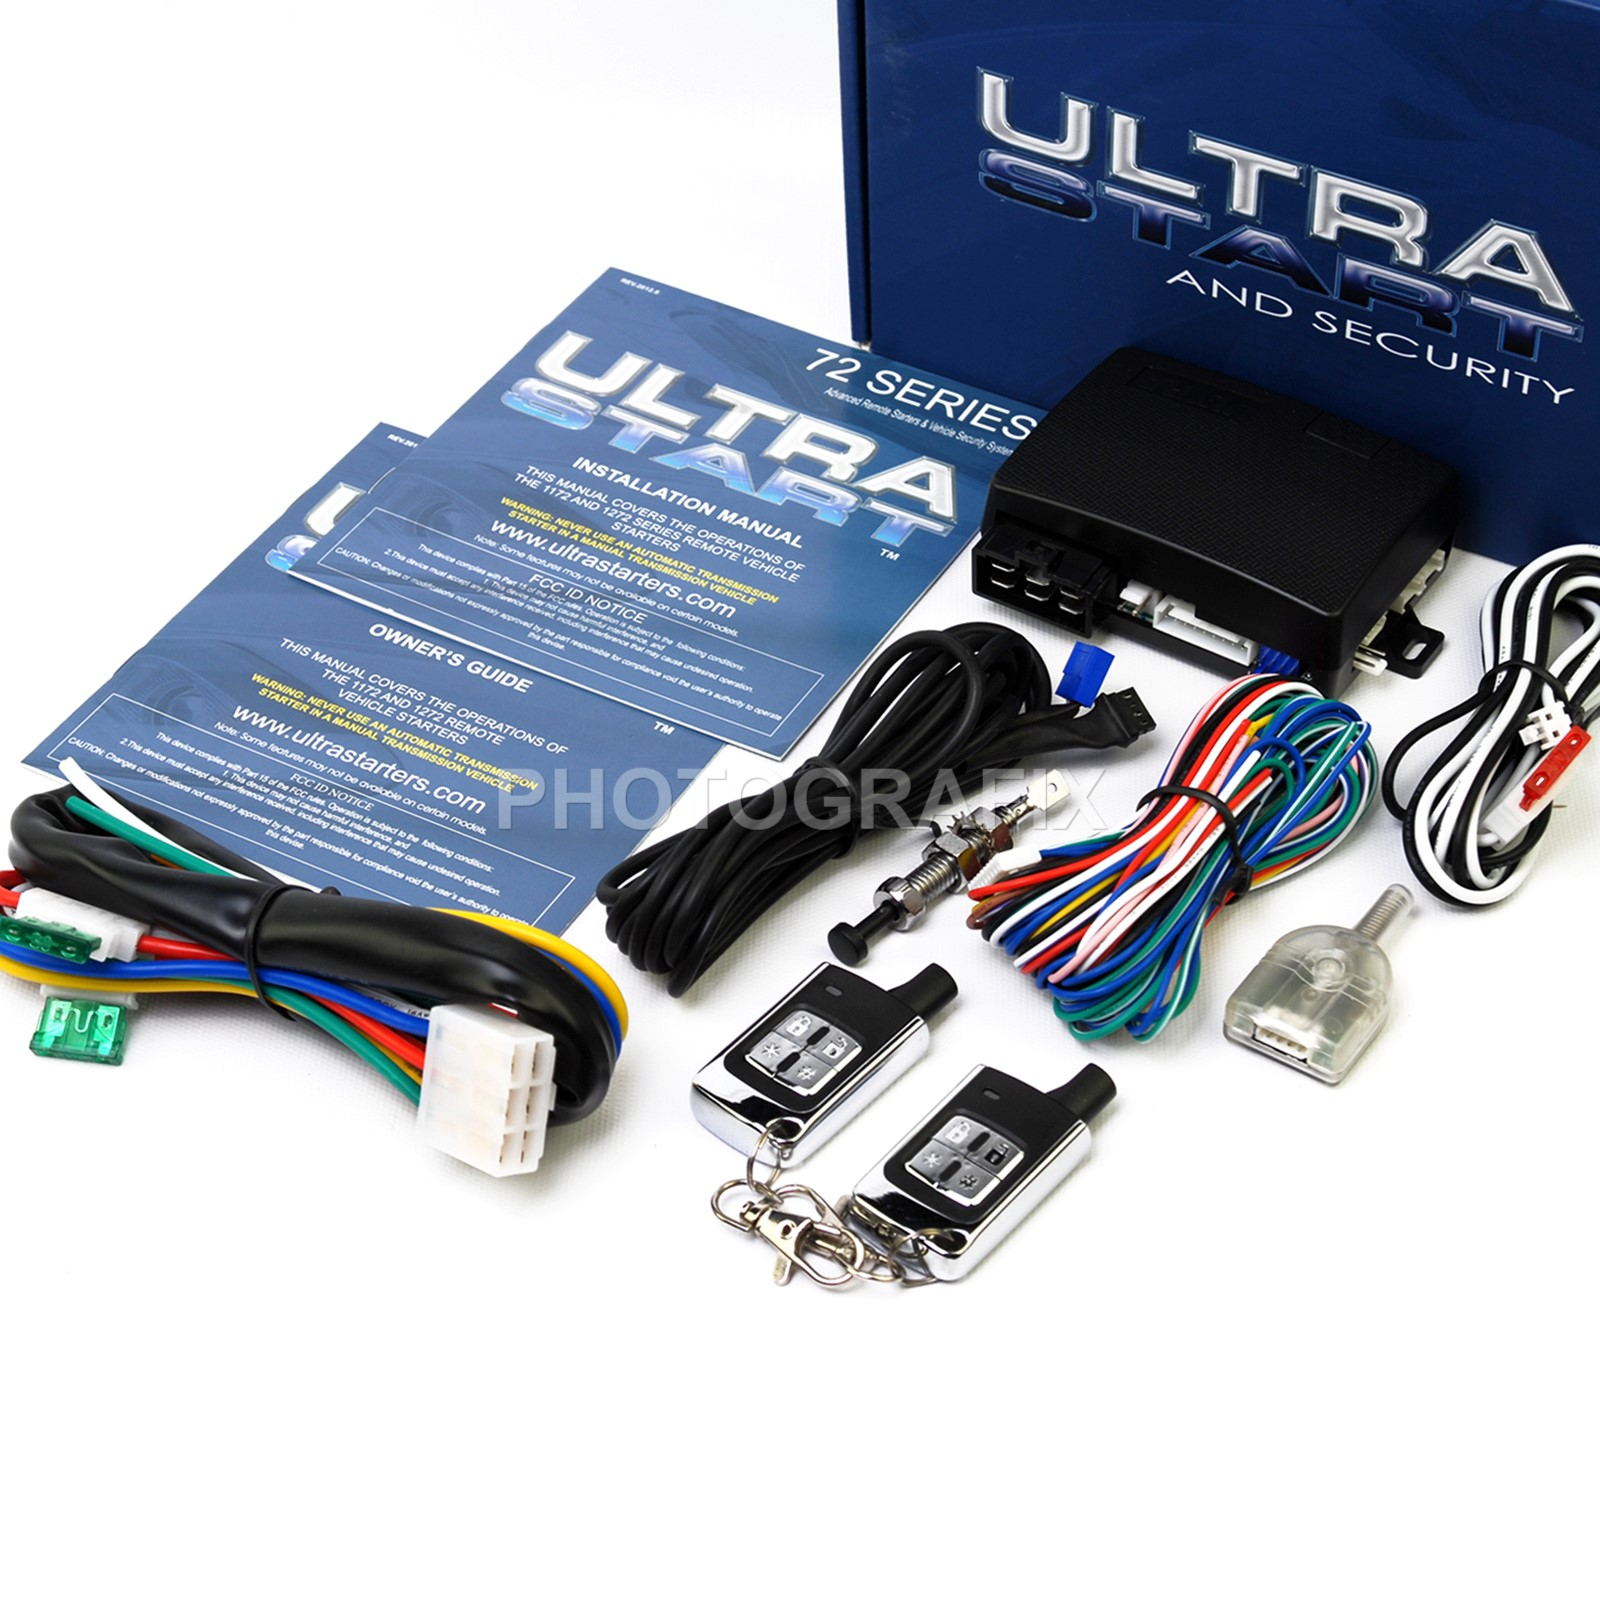 ultra start 1272 xr pro keyless auto remote car start starter diagrams start wiring remote oltrastart [ 1600 x 1600 Pixel ]